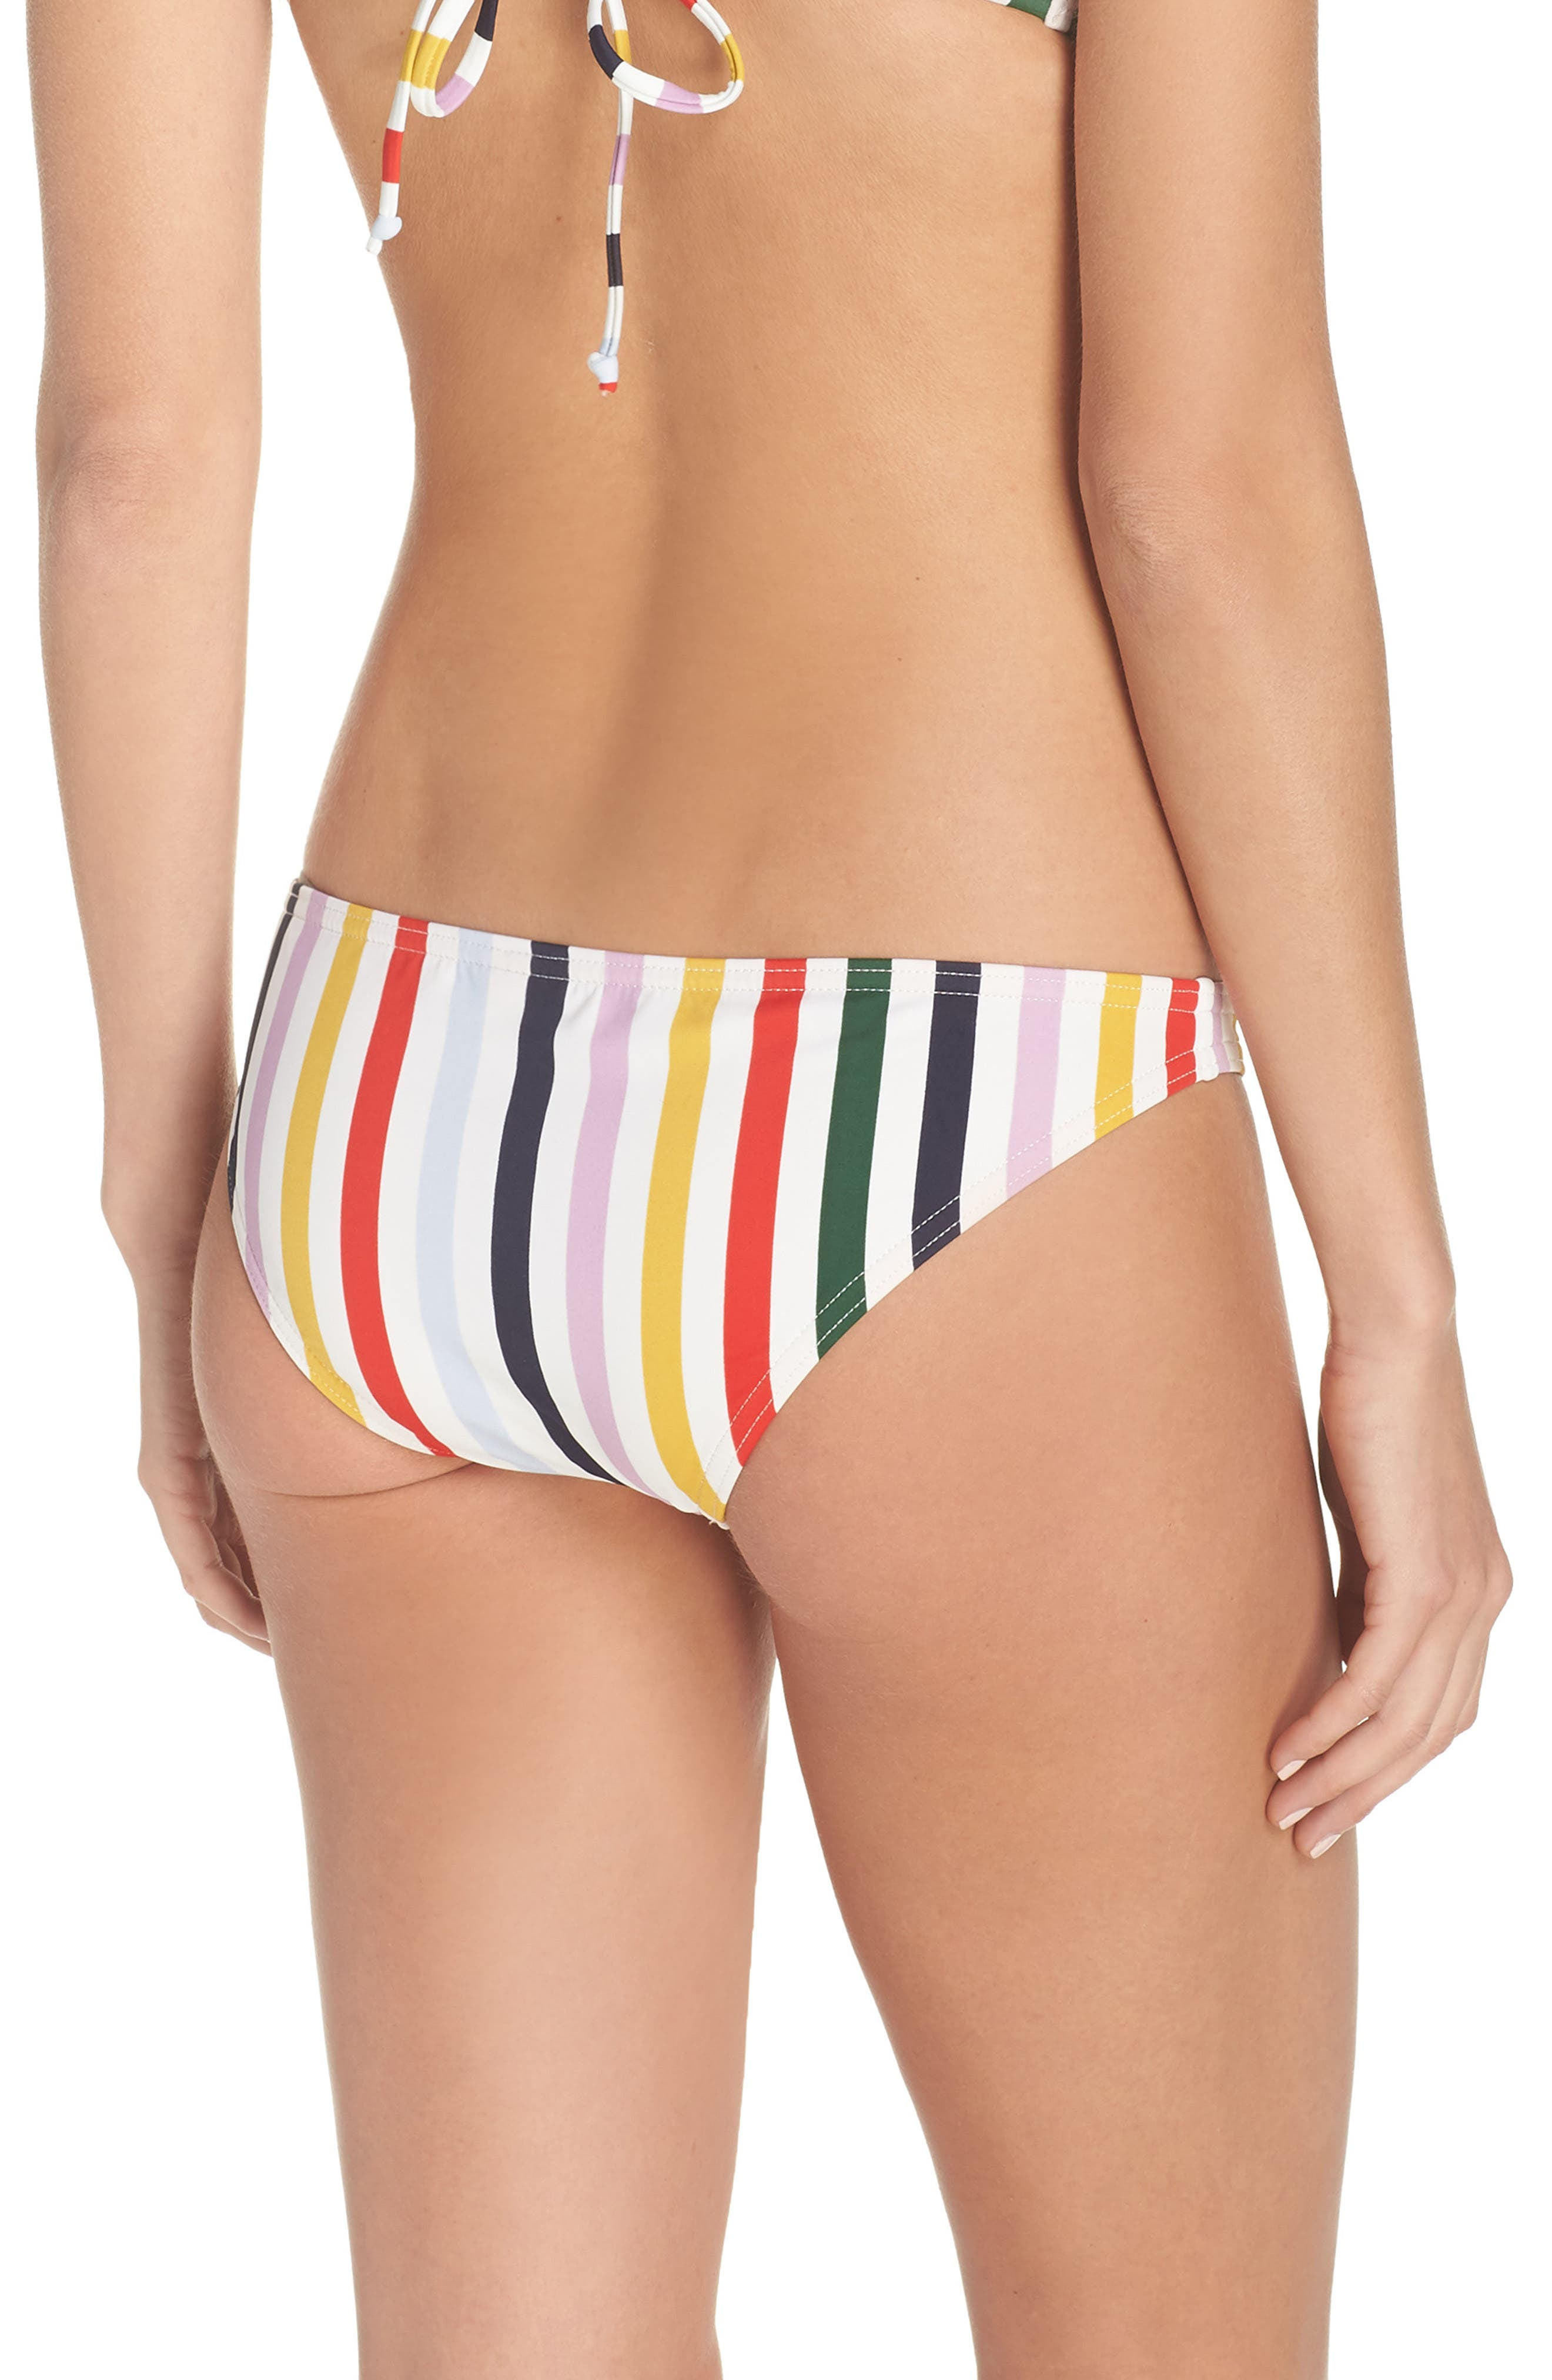 Holiday Stripe Lowrider Bikini Bottoms,                             Alternate thumbnail 2, color,                             IVORY RICH GOLD MULTI